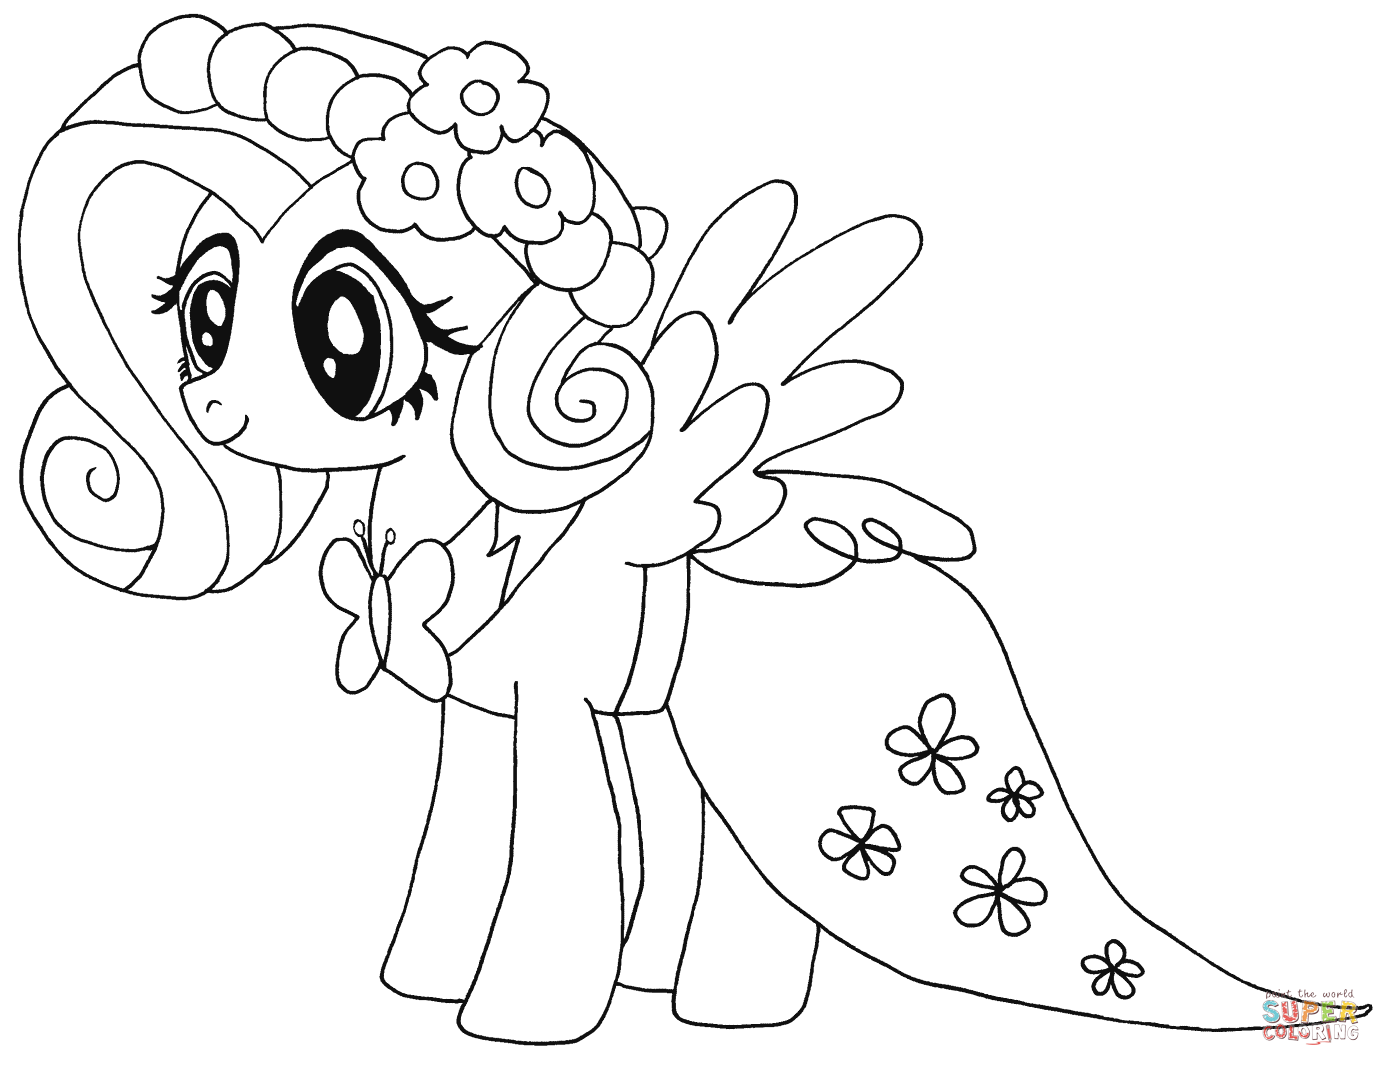 Ausmalbilder My Little Pony Equestria Girl : My Little Pony Fluttershy Coloring Page Free Printable